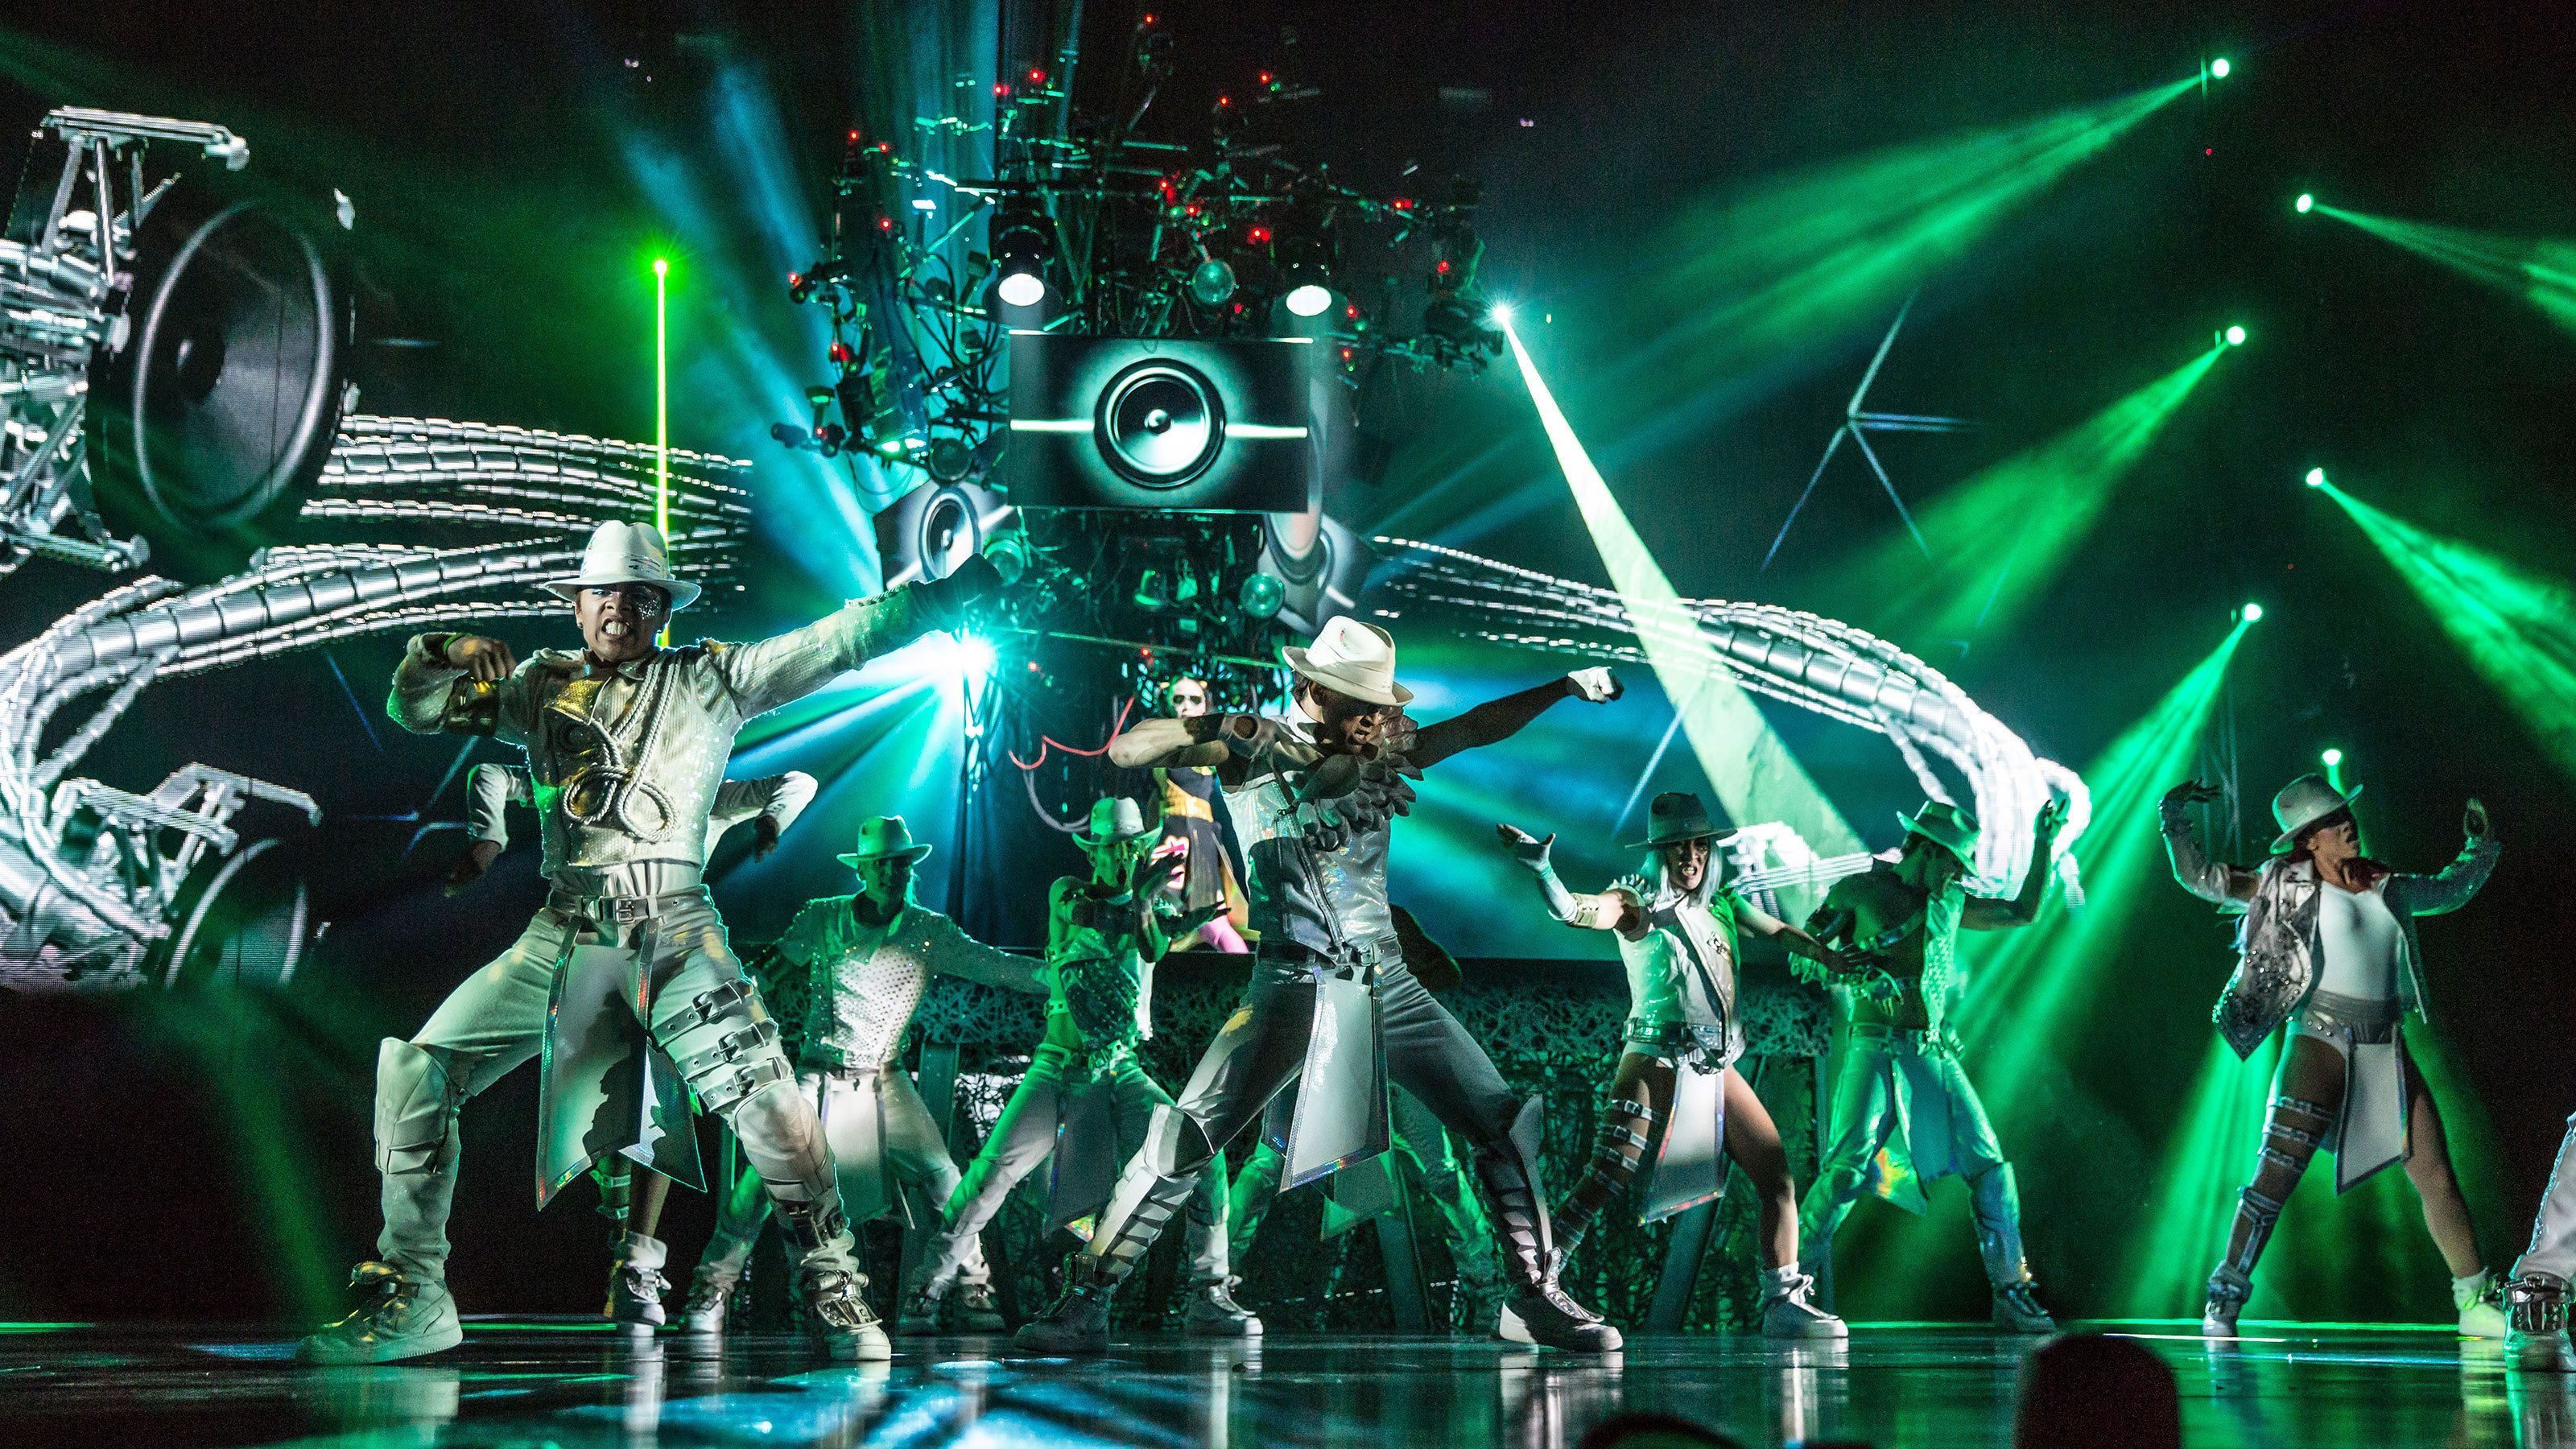 Image from number in Cirque du Soleil® show One